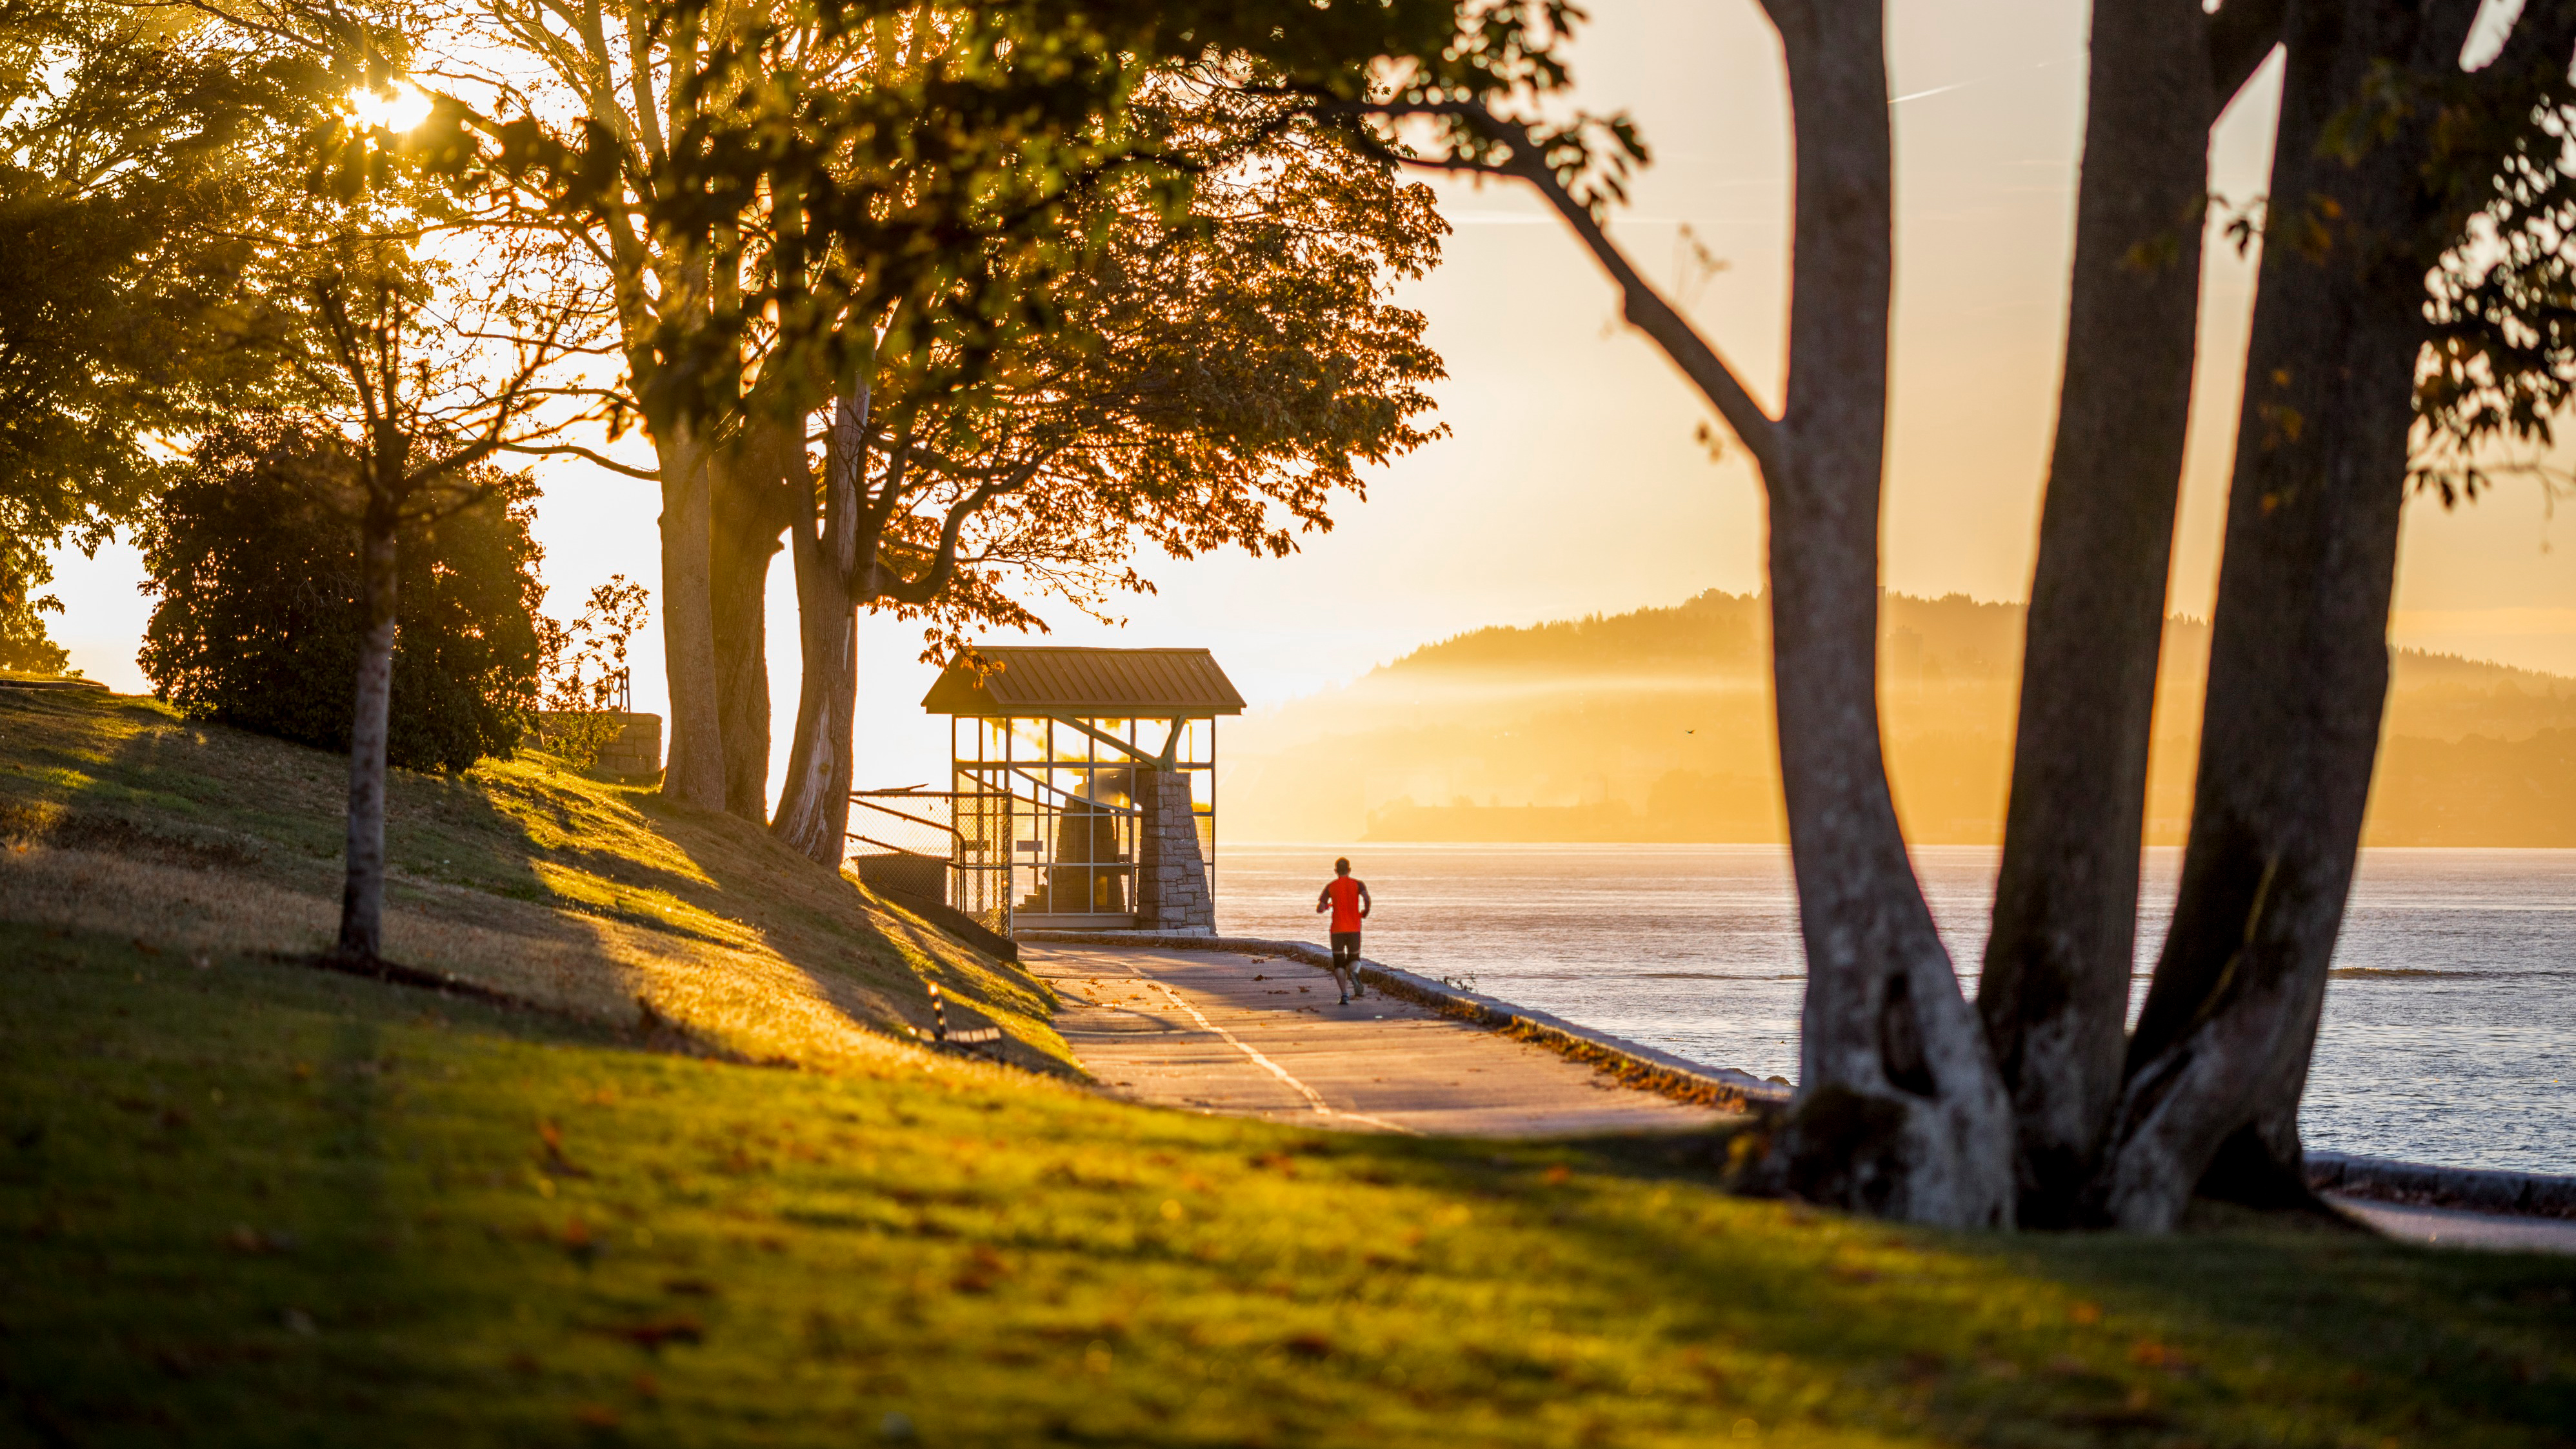 World's most relaxing places: 16 spots to refresh and recharge | CNN Travel